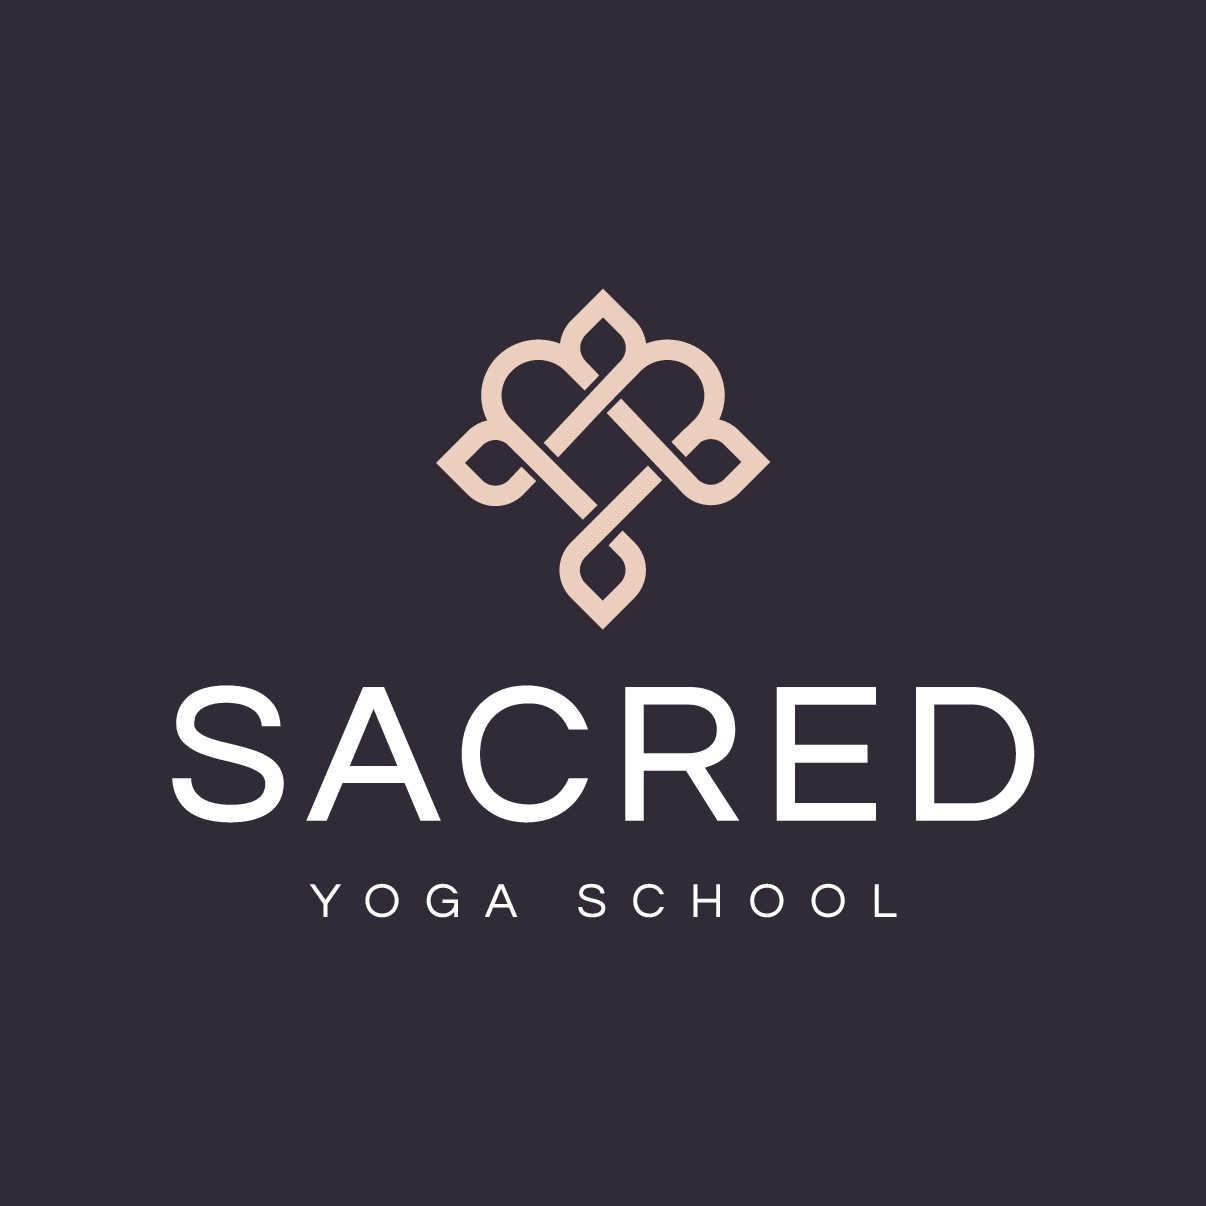 SACRED YOGA SCHOOL